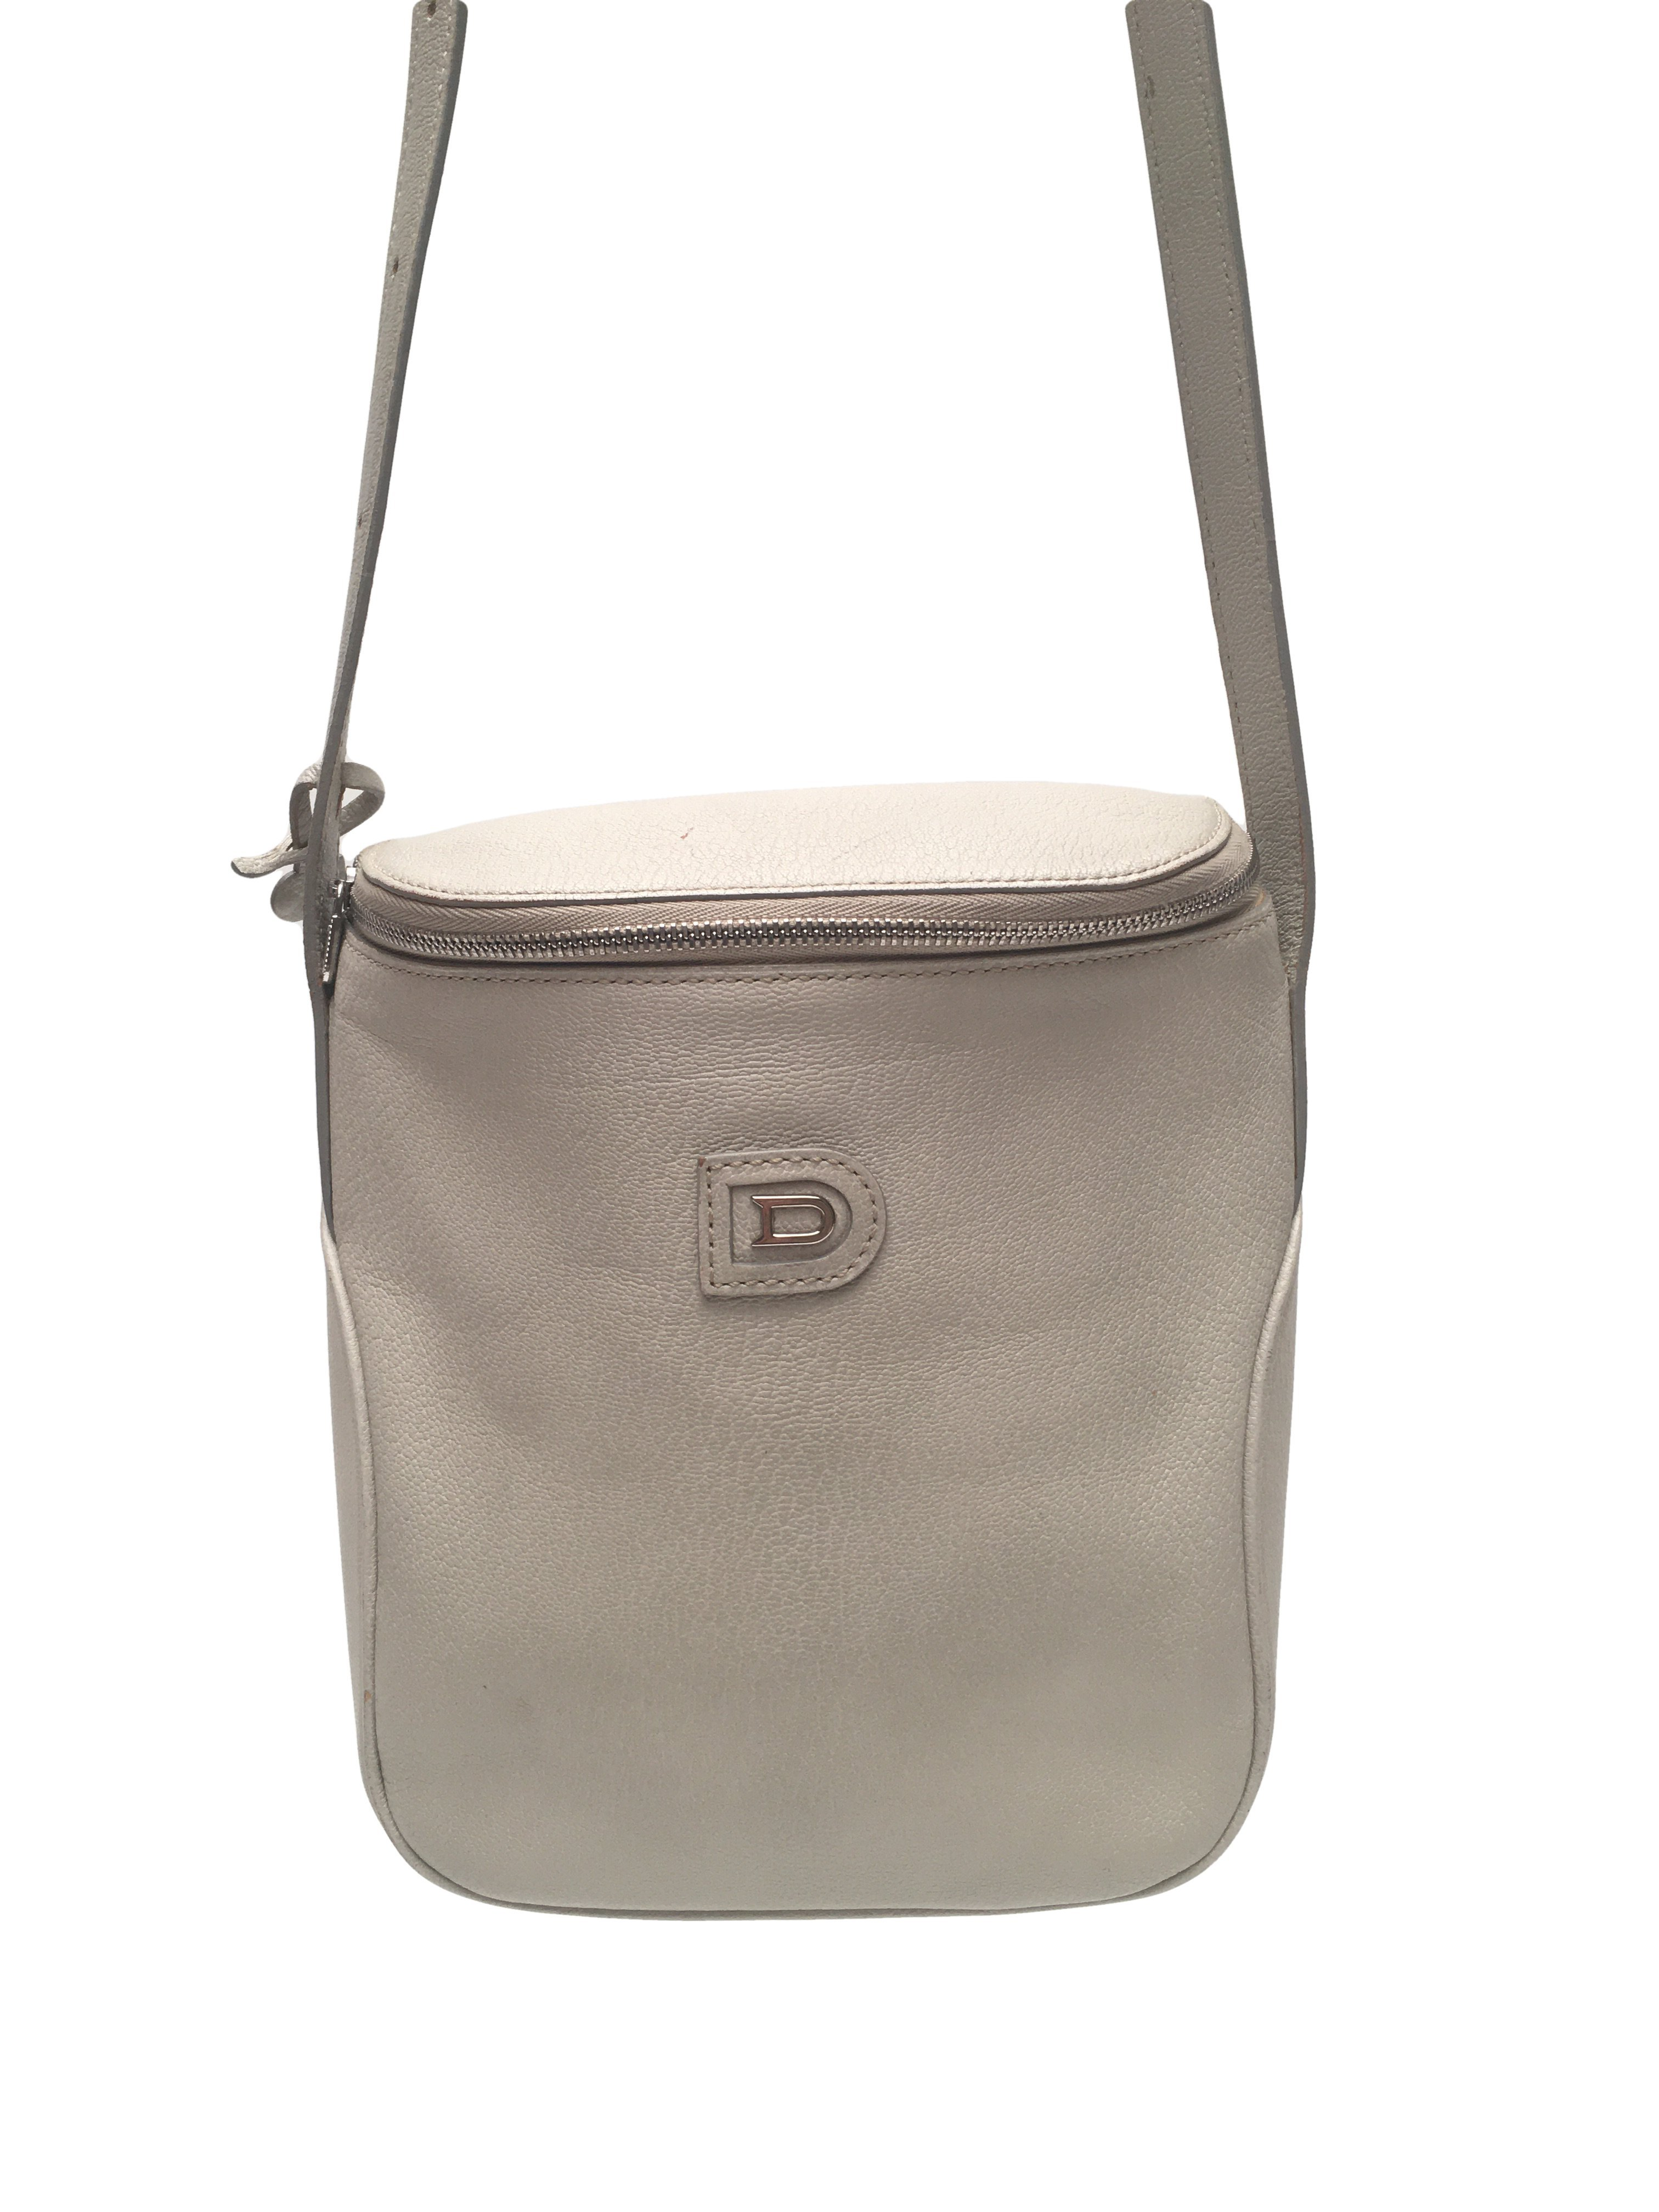 delvaux-crossover-greige